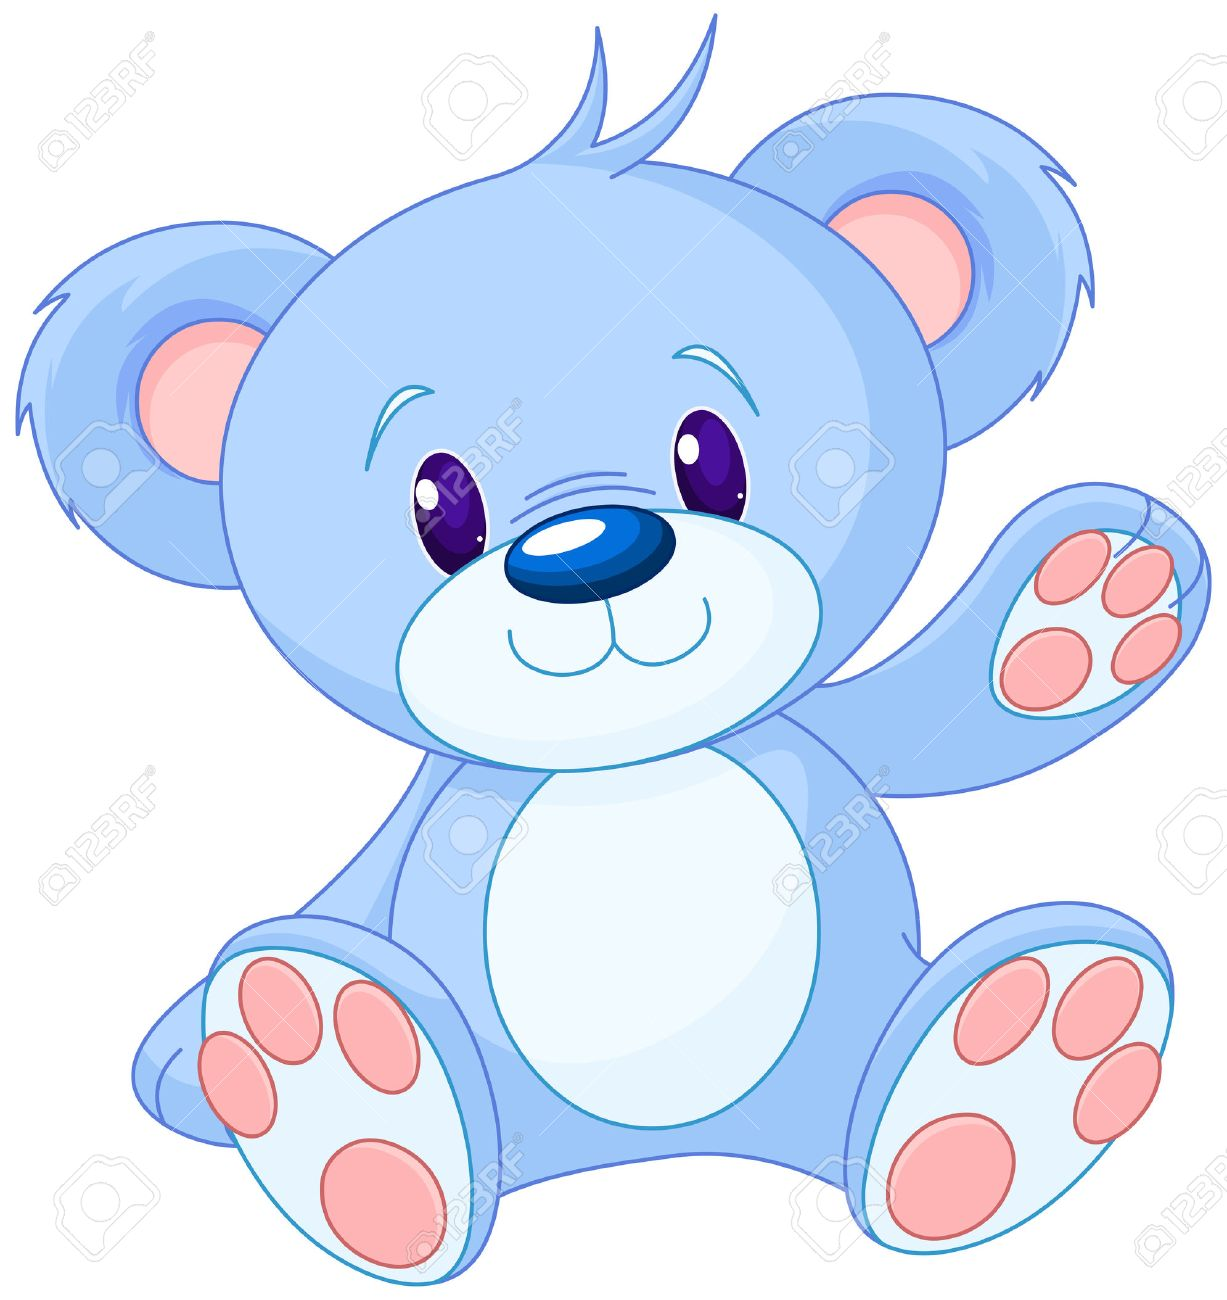 Illustration of cute toy bear royalty free cliparts vectors and illustration of cute toy bear stock vector 48171105 thecheapjerseys Gallery